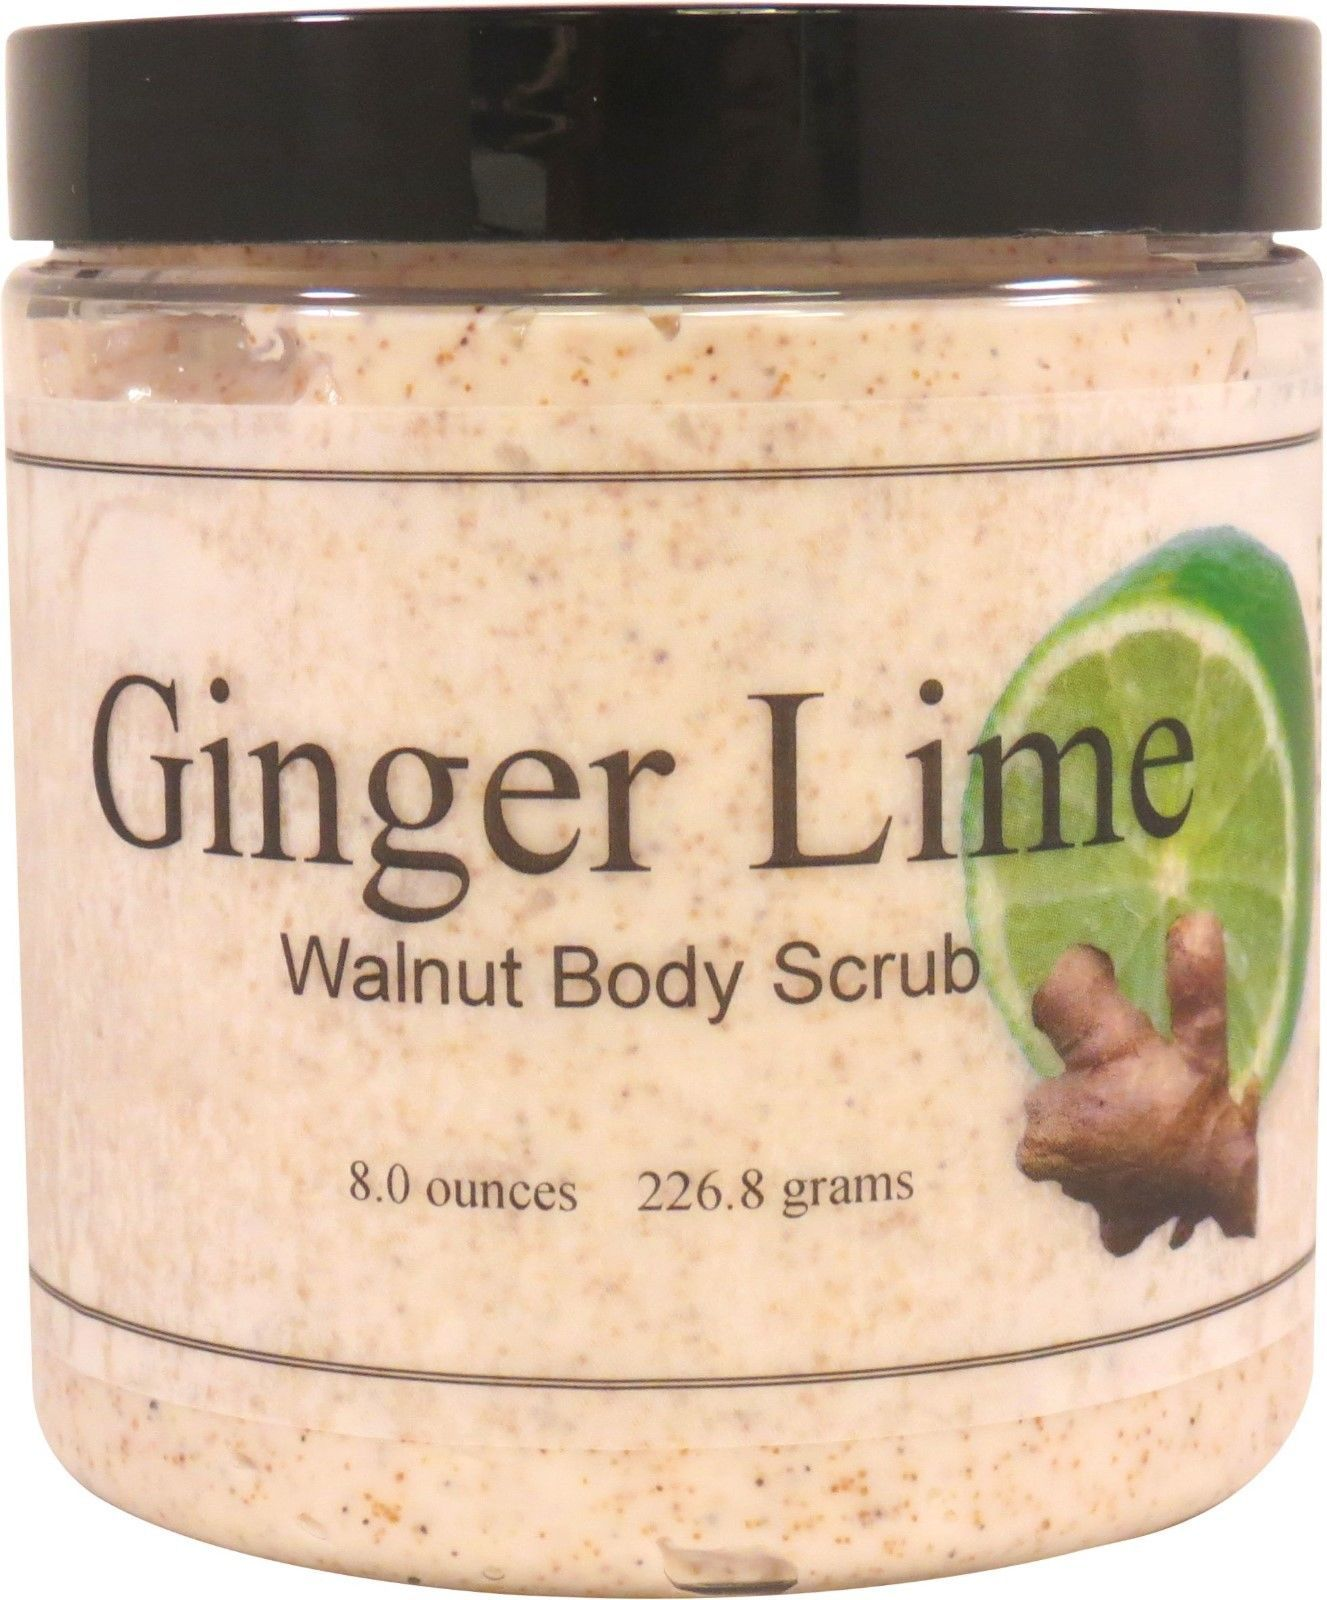 Ginger Lime Walnut Body Scrub